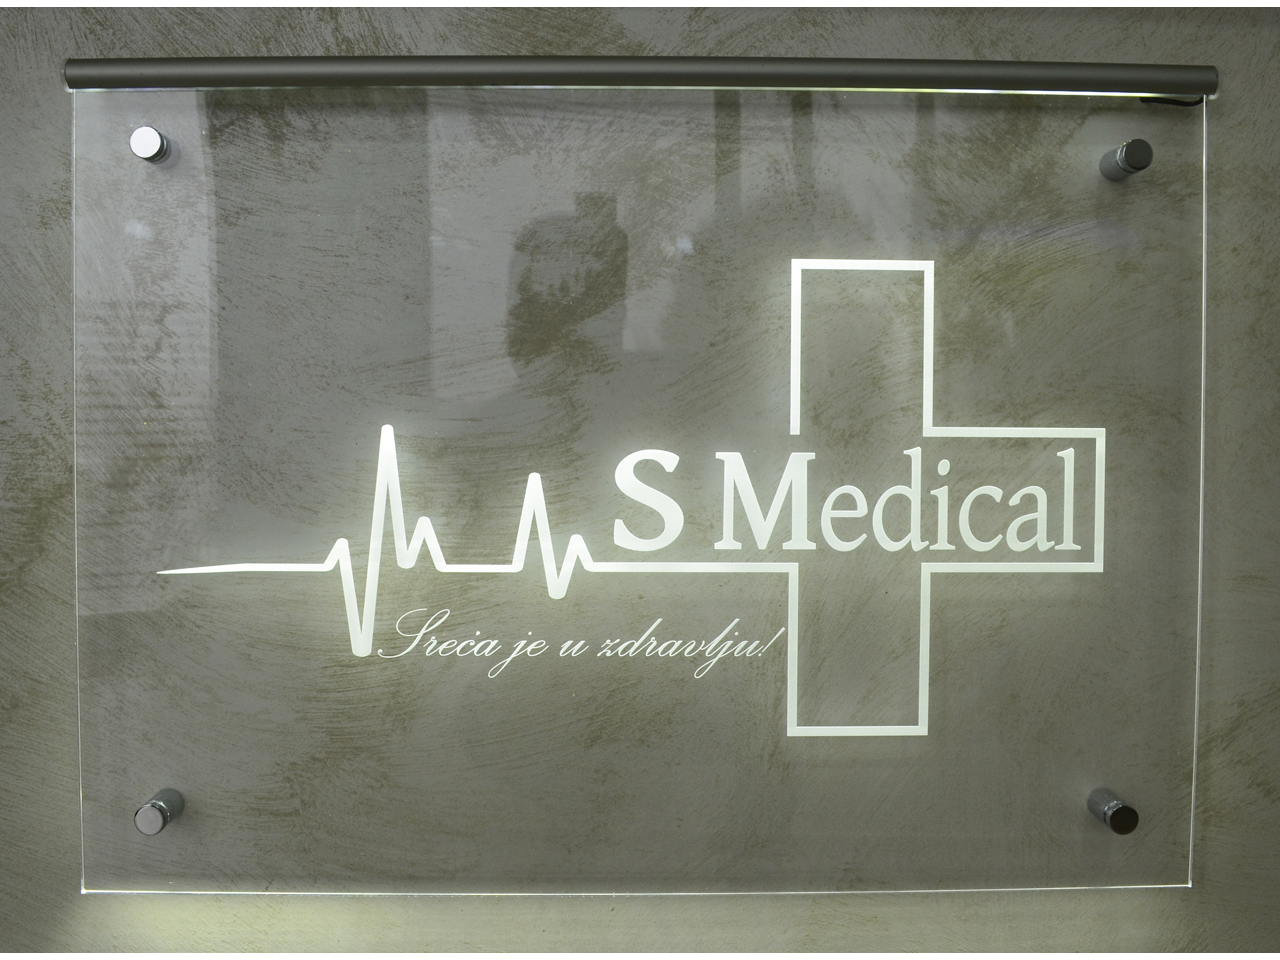 S MEDICAL Doctor Beograd